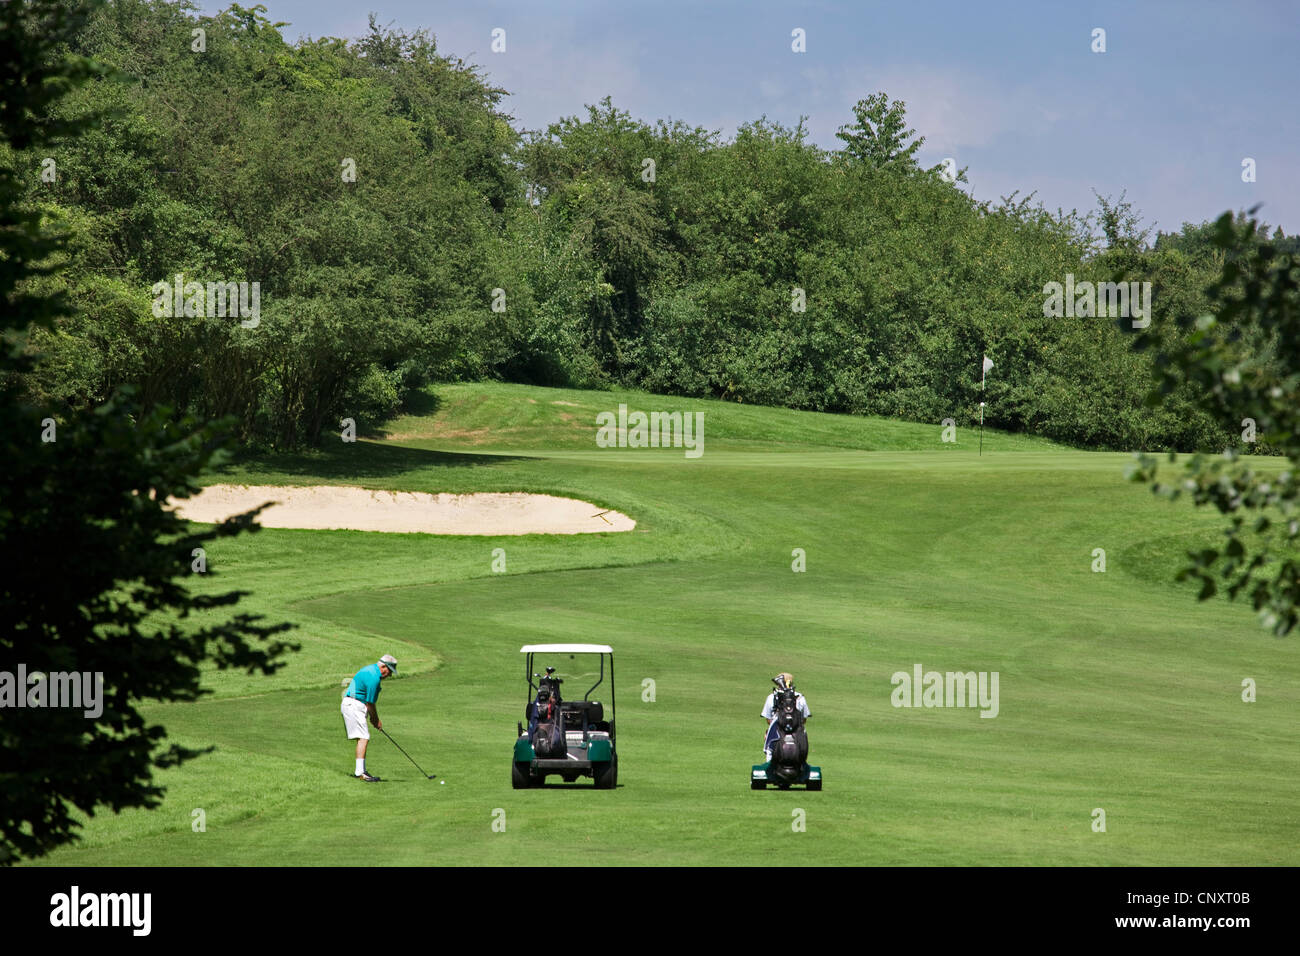 Pensioner with golf cart playing golf on fairway of golf course in Europe - Stock Image